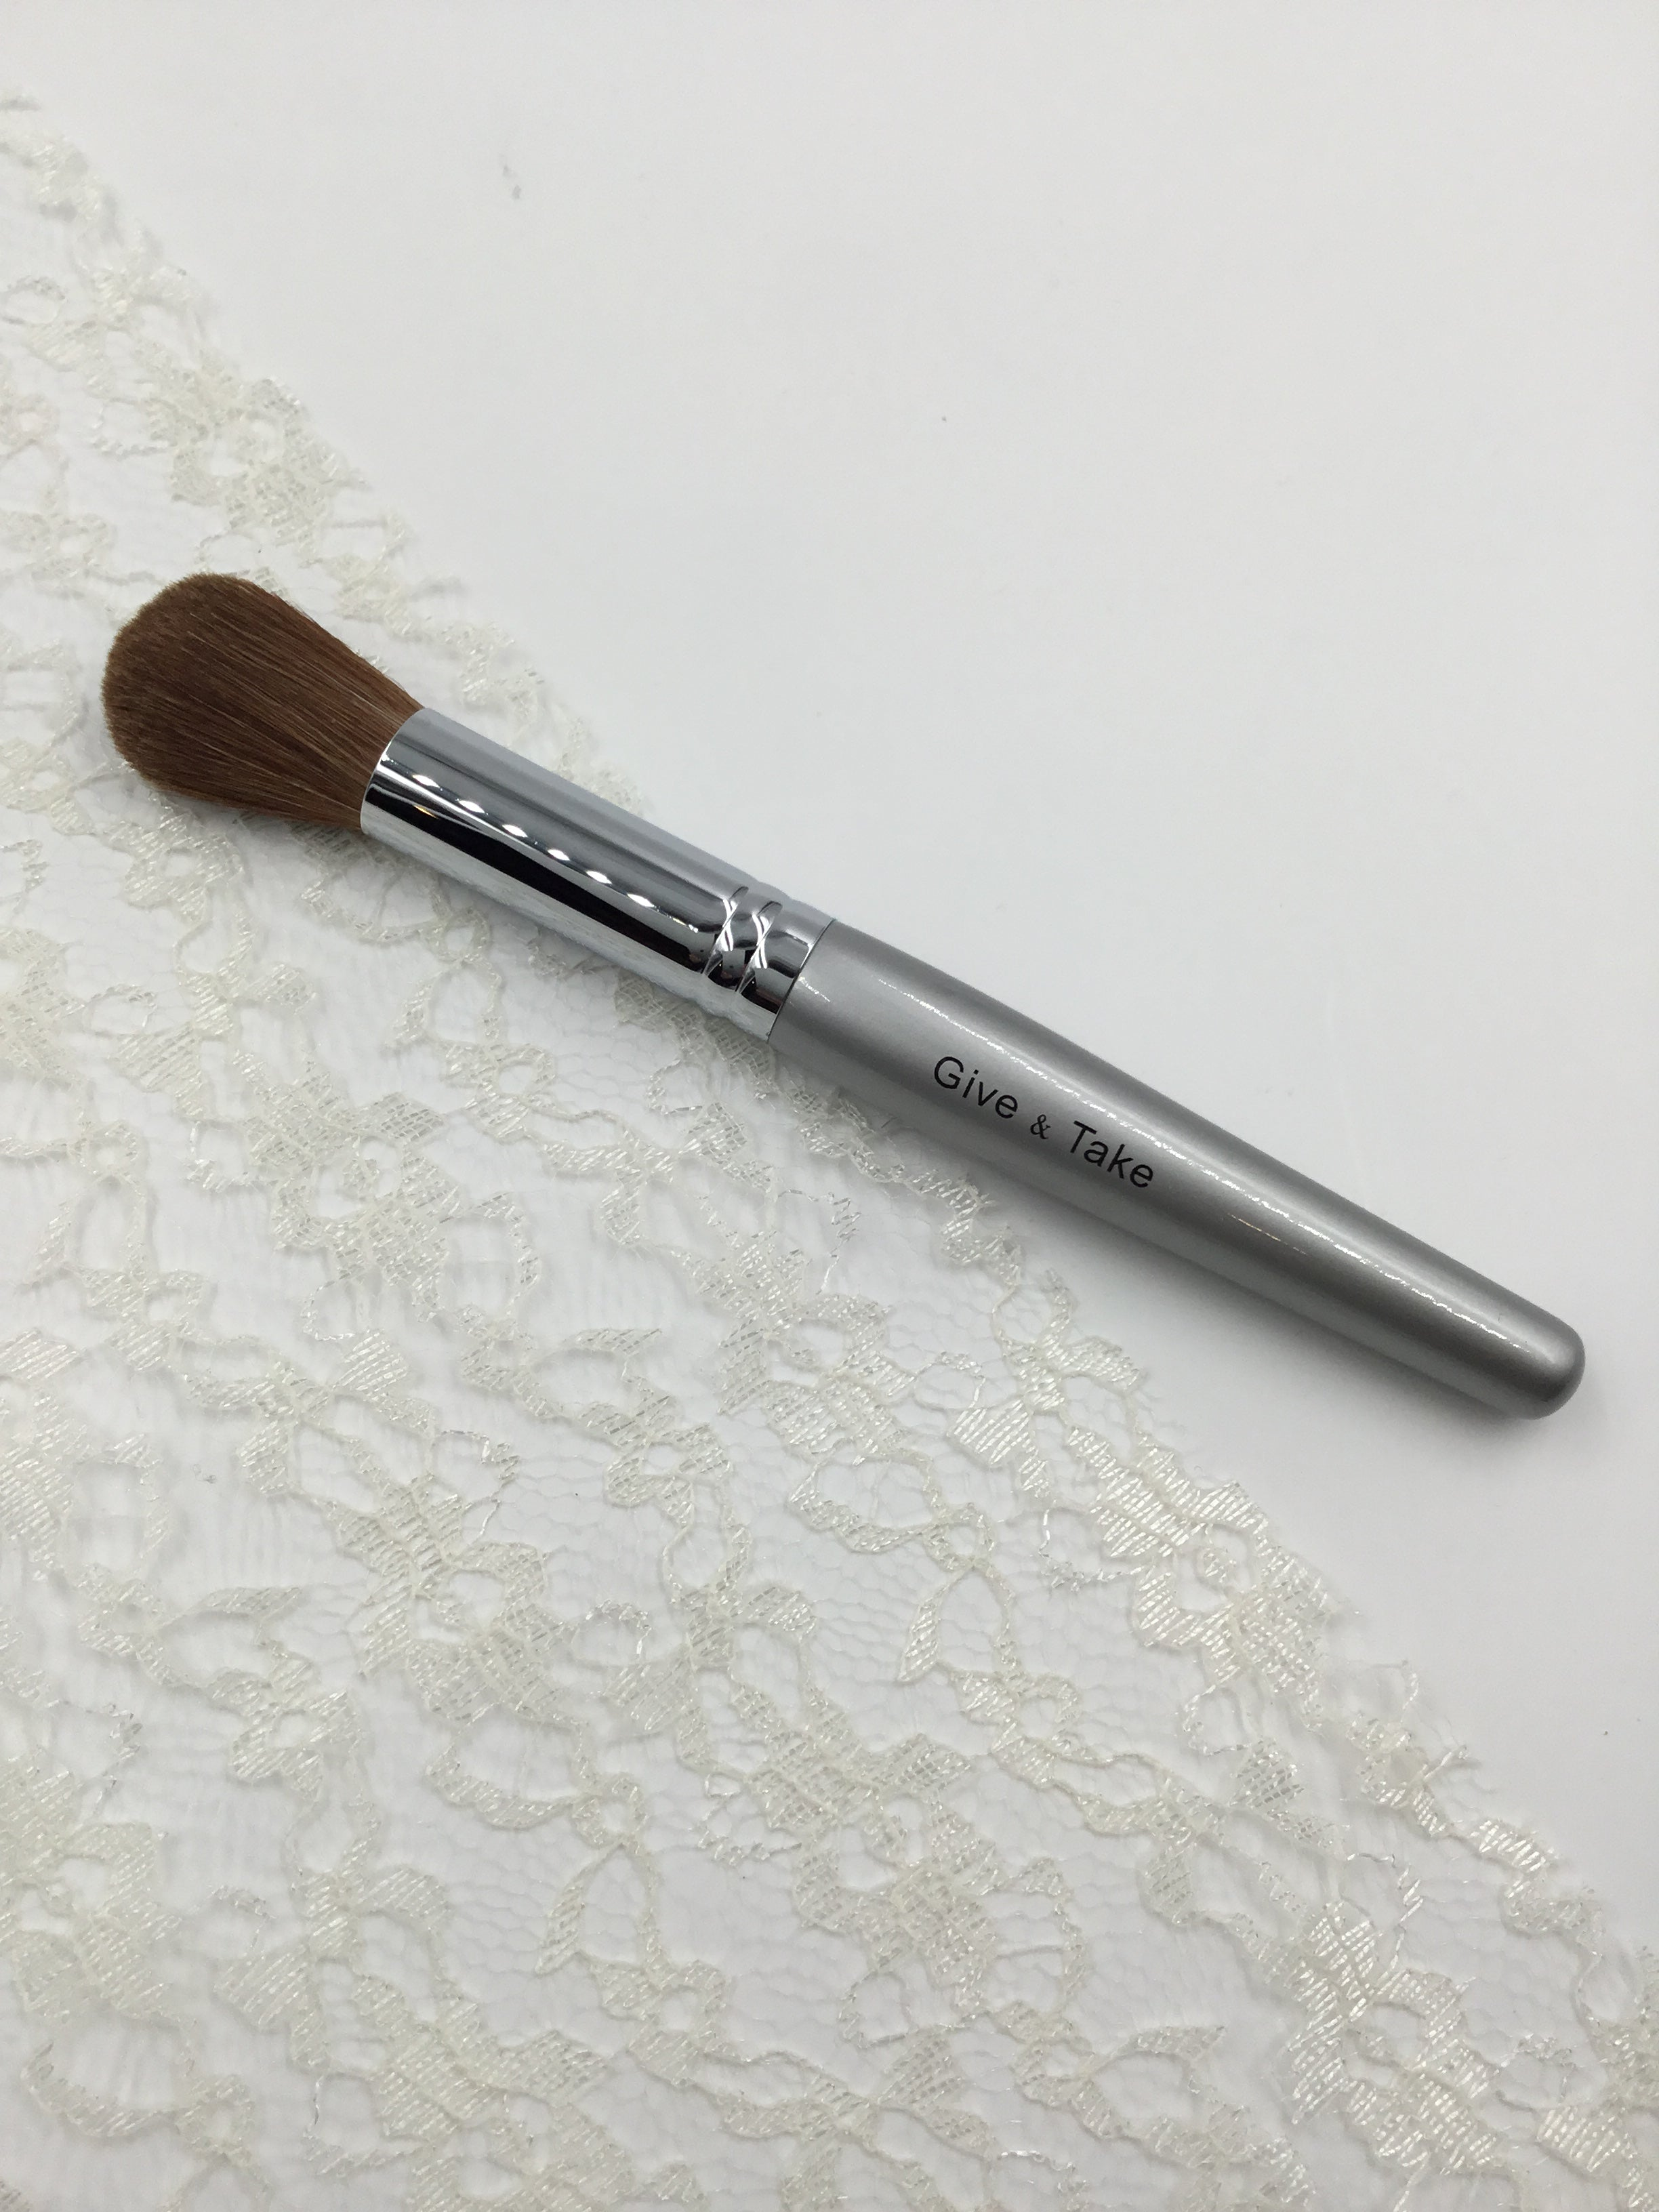 Give and Take Powder Makeup Blush Brush